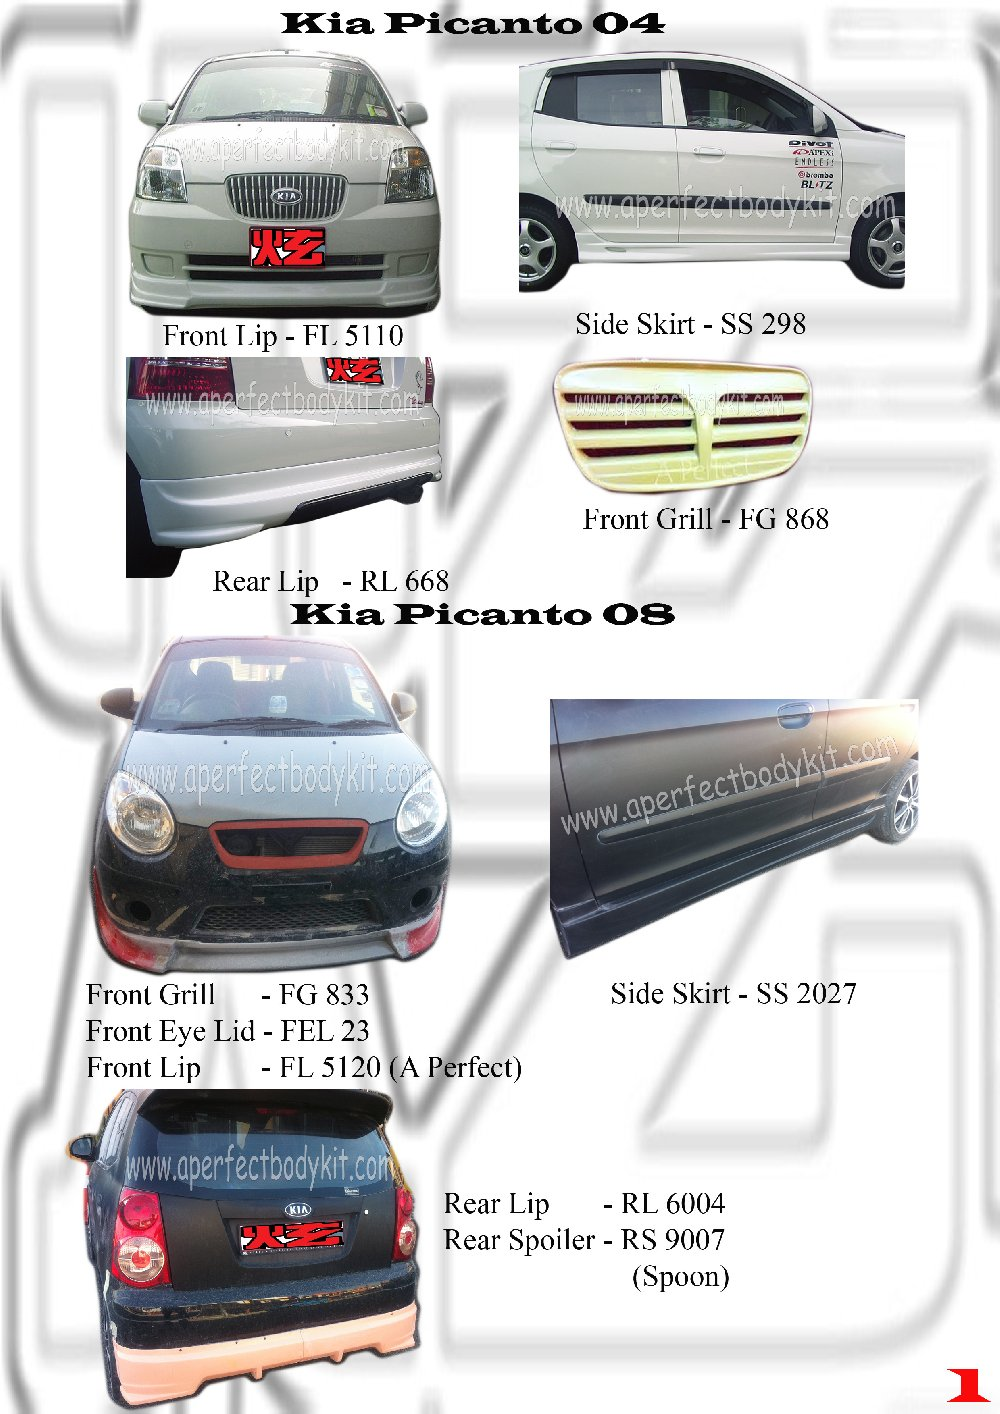 Picanto 04 08 kia picanto jb for Kia motor finance physical payoff address